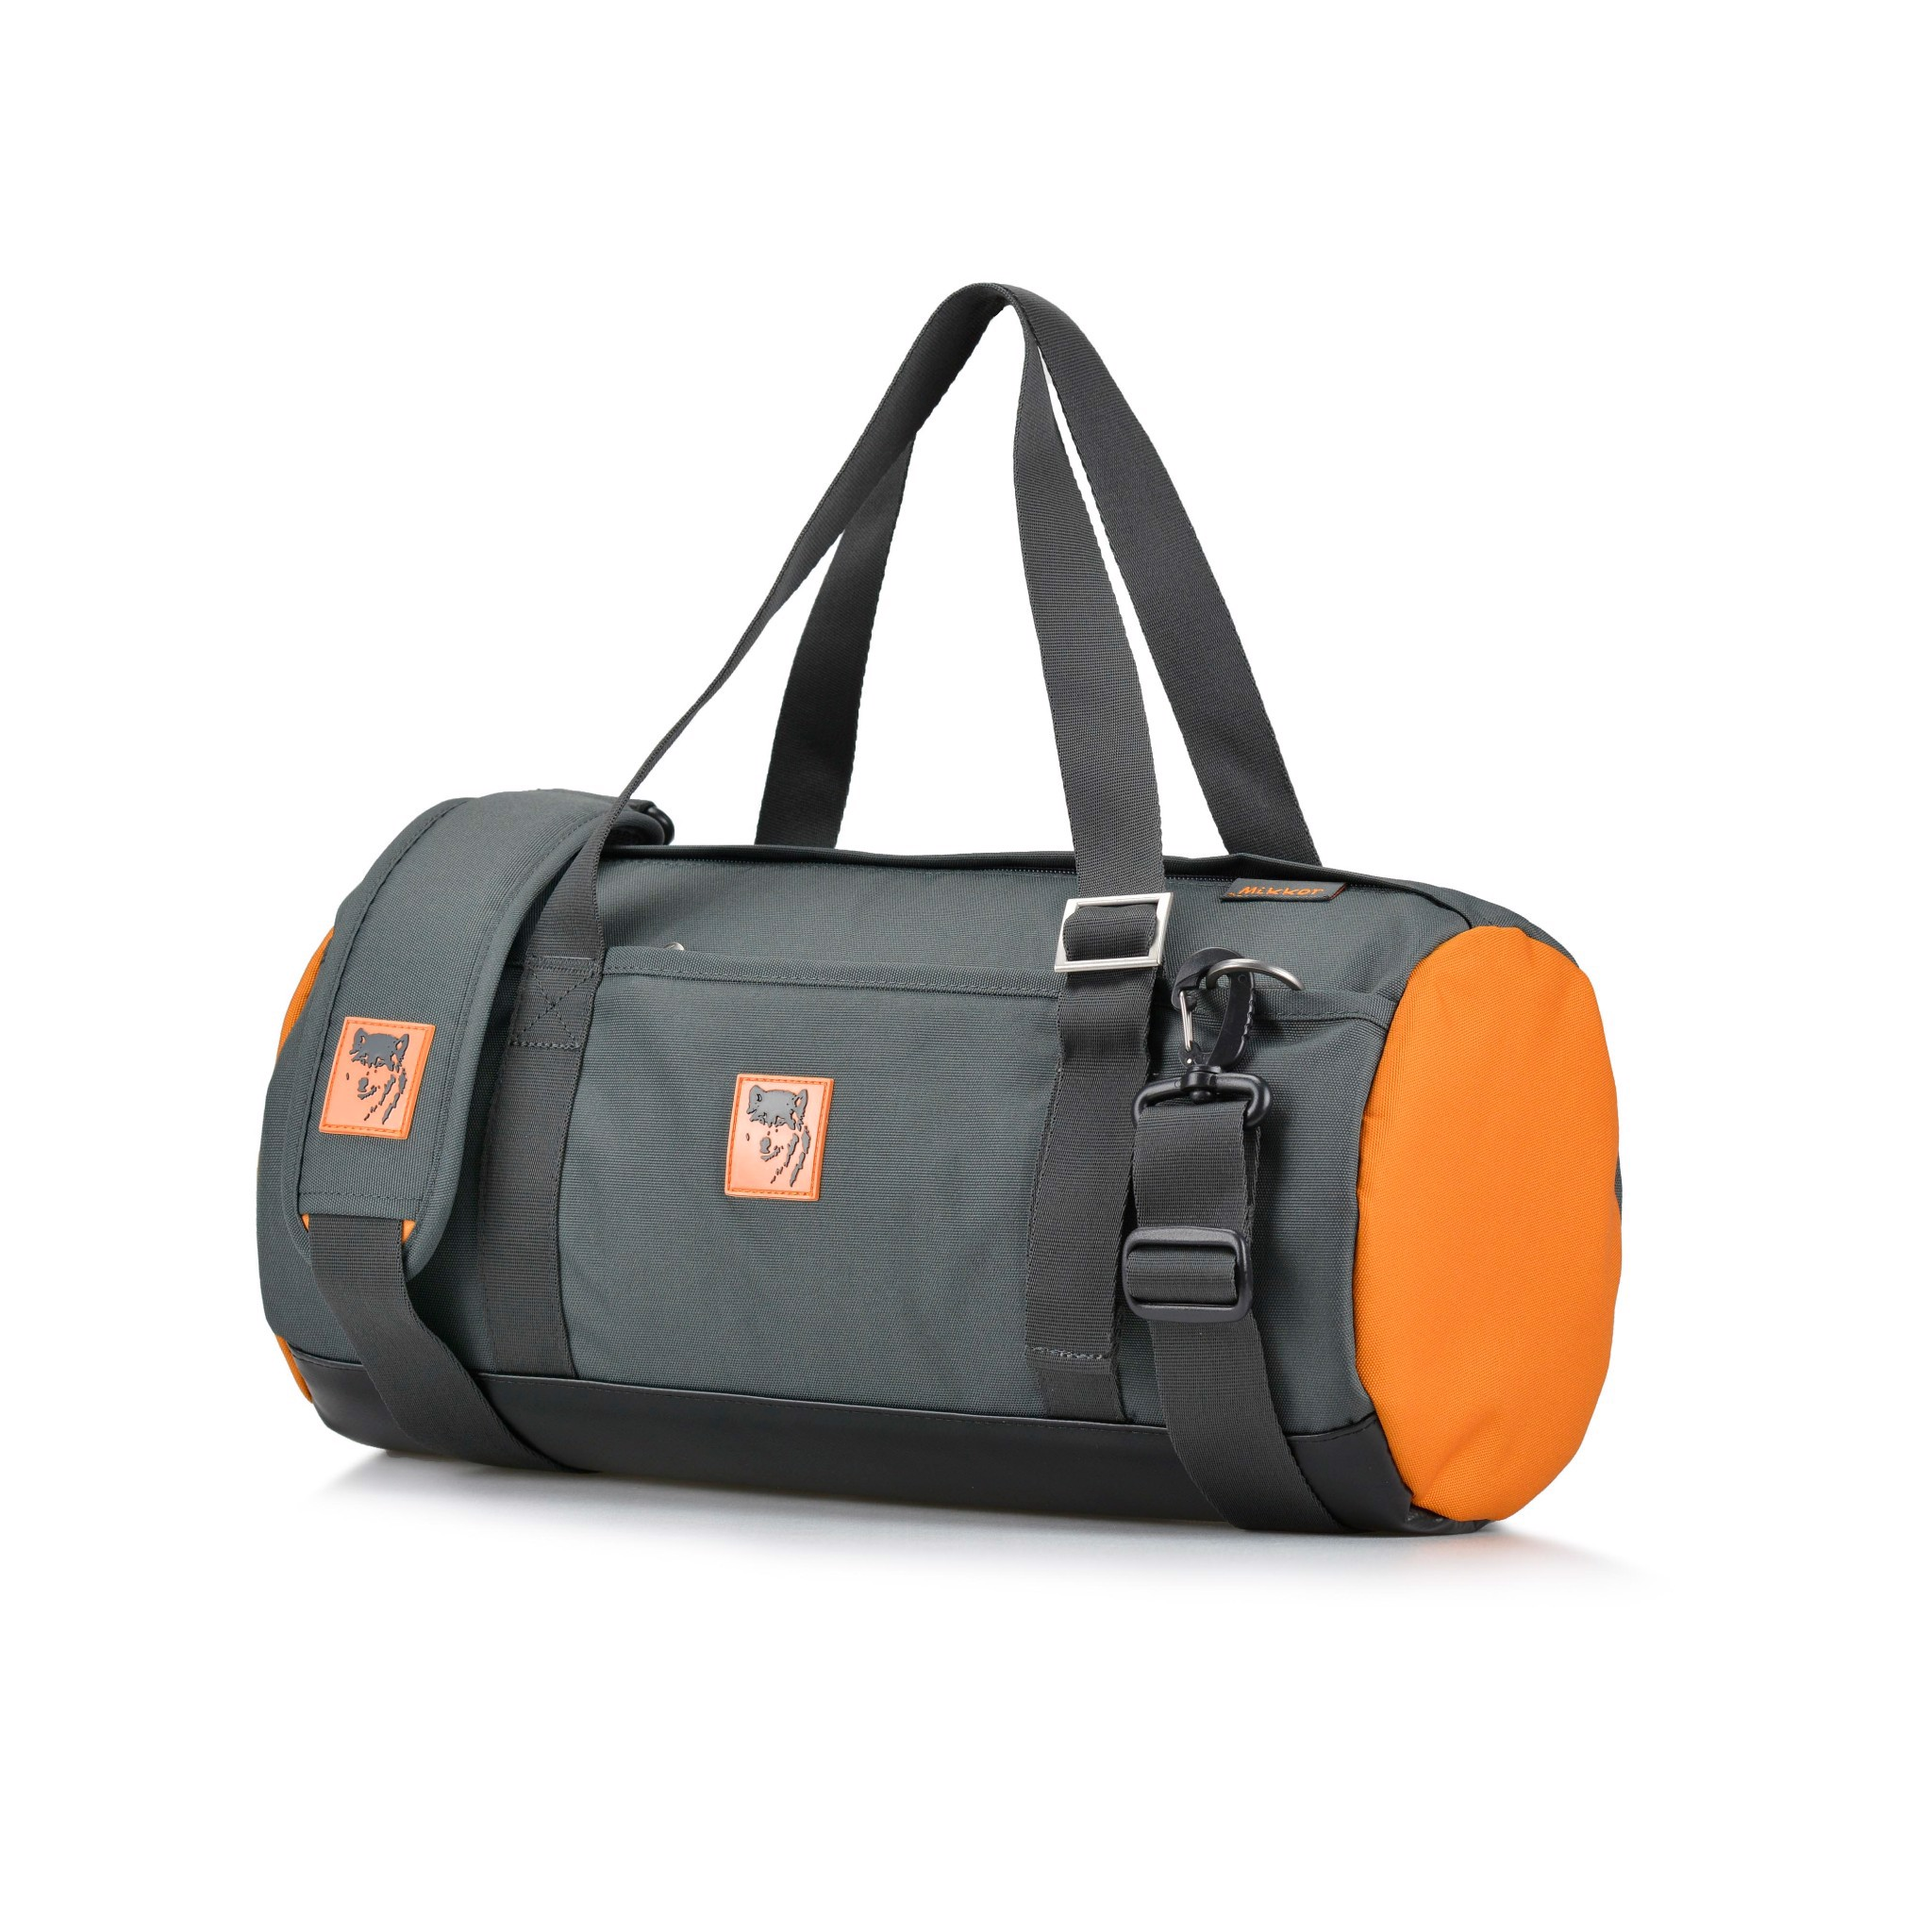 The Sporty Gymer -Charcoal/ Orange